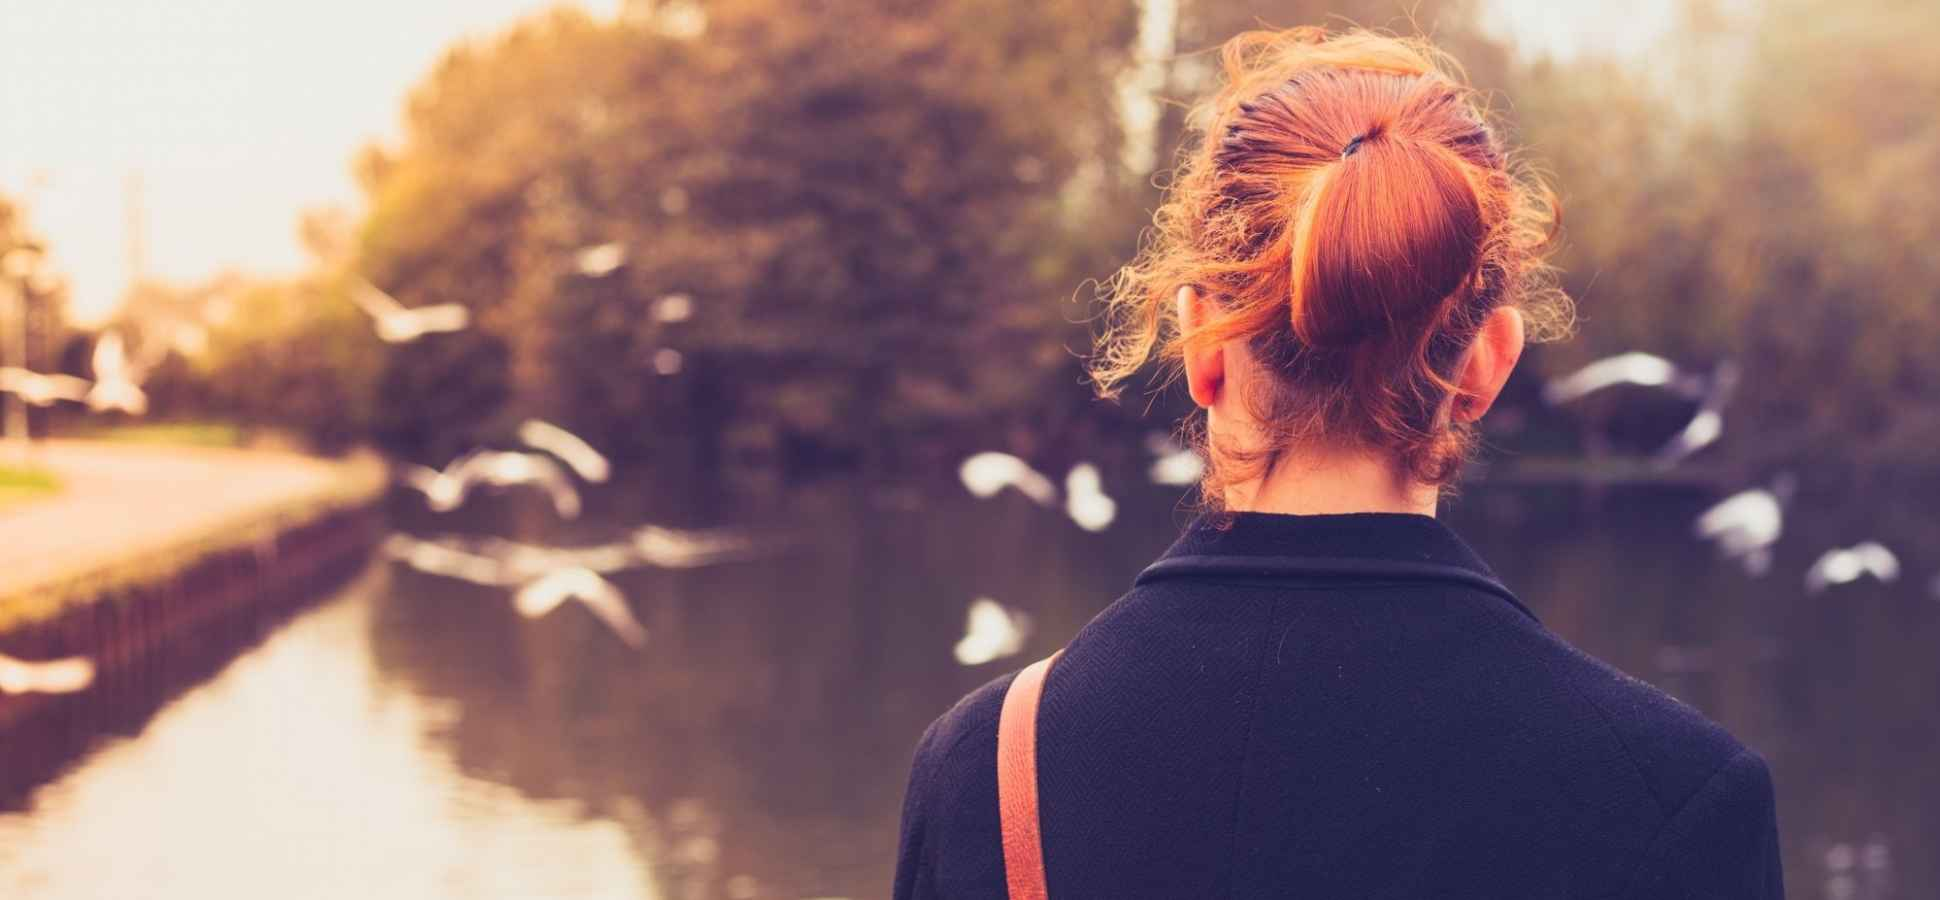 4 Ways to Overcome Feelings of Loneliness